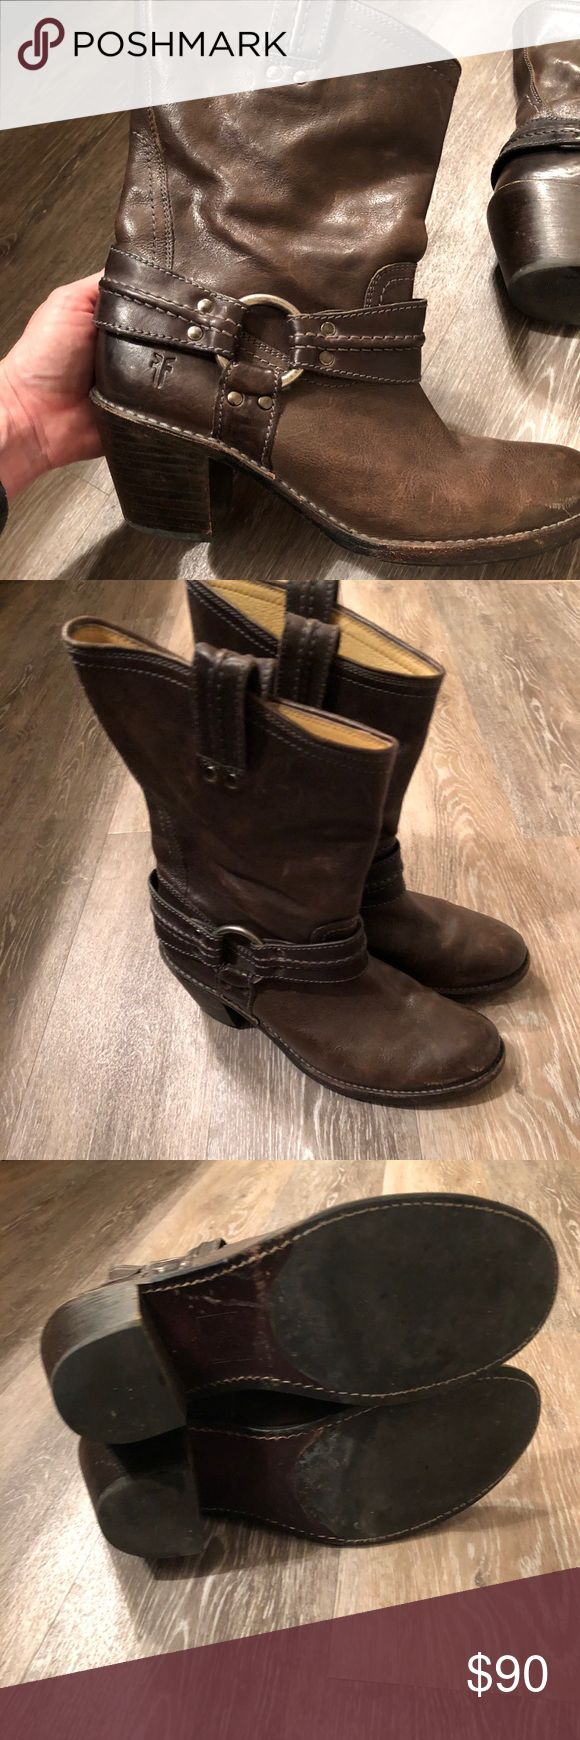 Frye Harness boots Brown sometimes green looking color! Super cute boots!!! A few scuffs on the right shoe Frye Shoes Heeled Boots